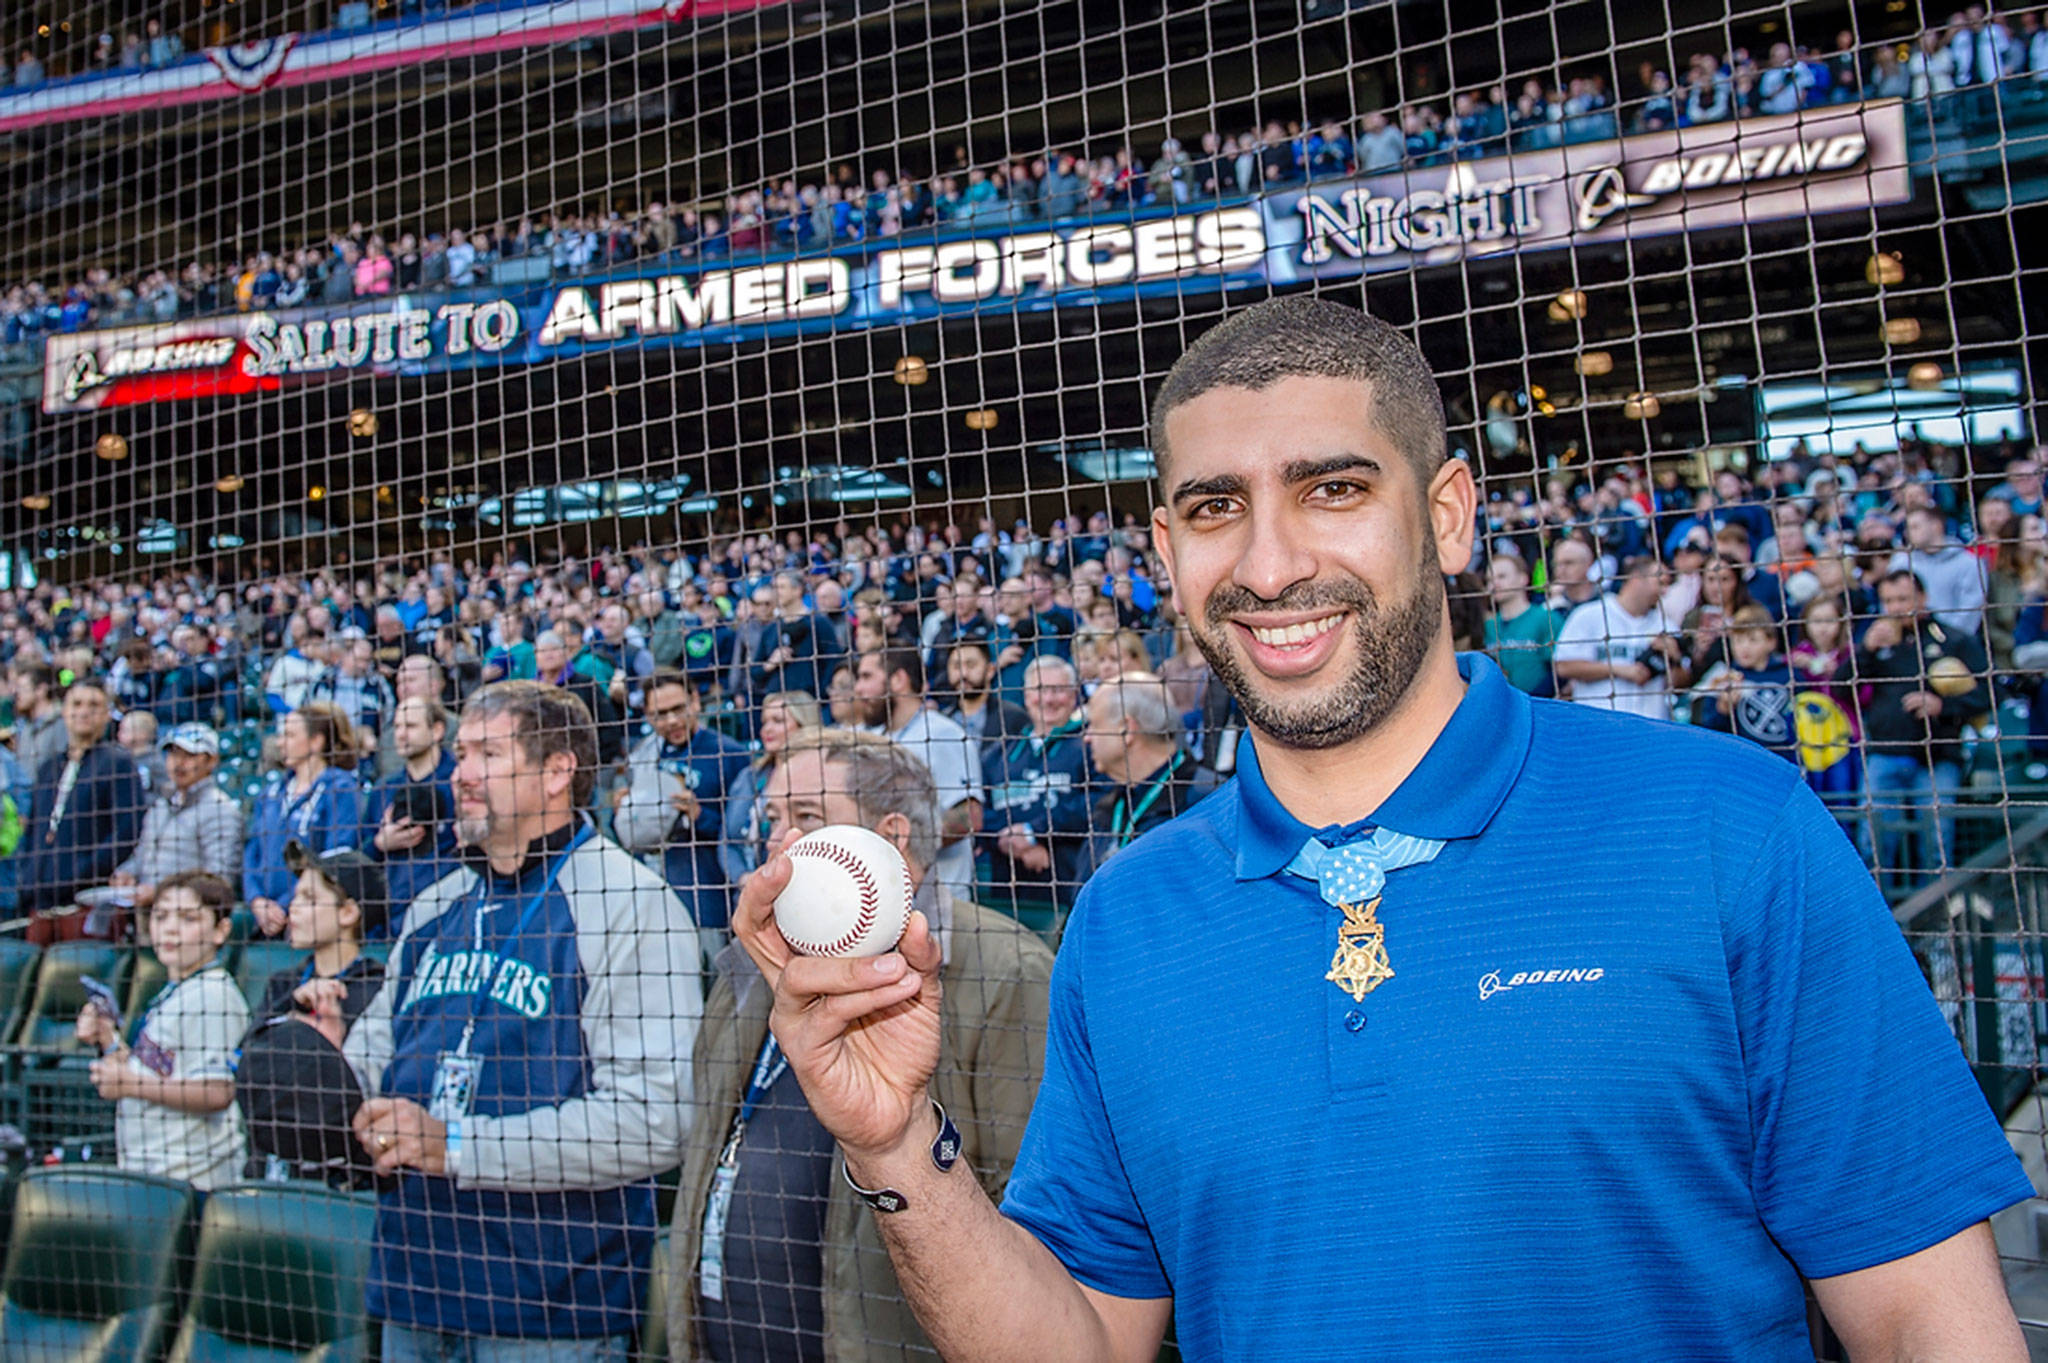 Flo Groberg, Boeing's director of veterans outreach and Medal of Honor recipient, prepares to throw out the ceremonial first pitch at the Mariners Salute to Armed Forces game, sponsored by Boeing.